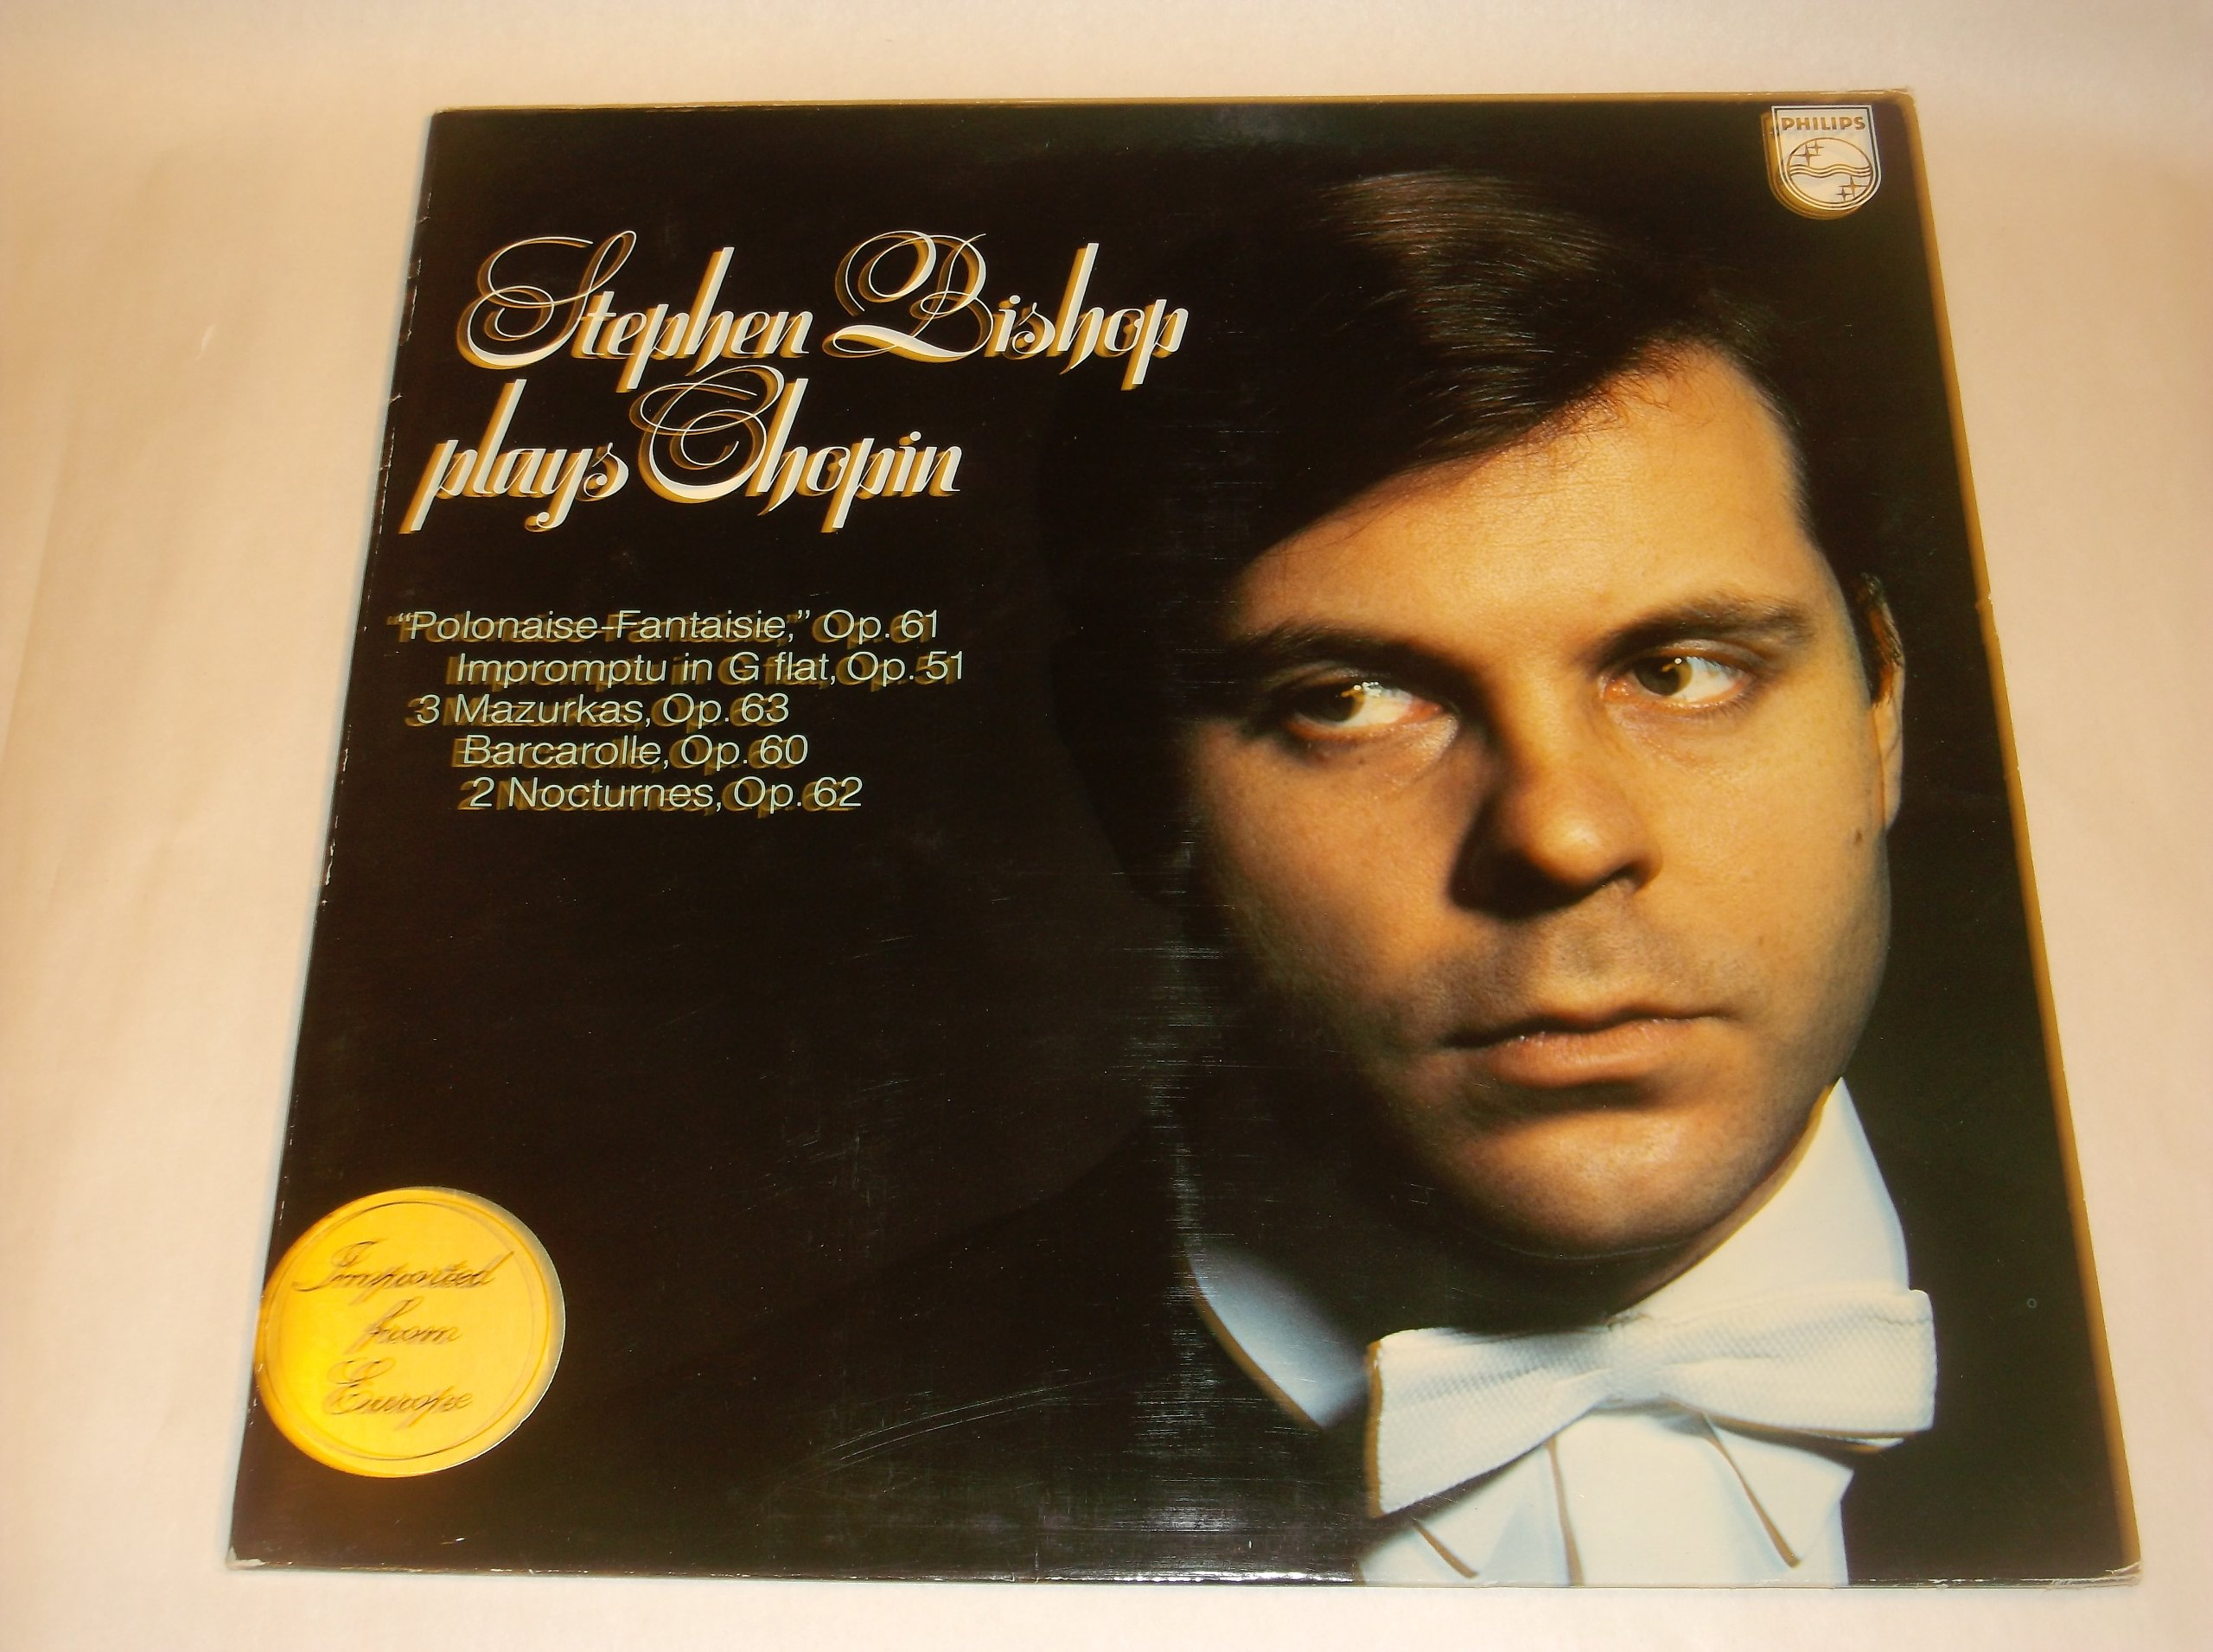 Stephen Bishop Plays Chopin: Polonaise-Fantaisie [etc.] by Philips 6500 393